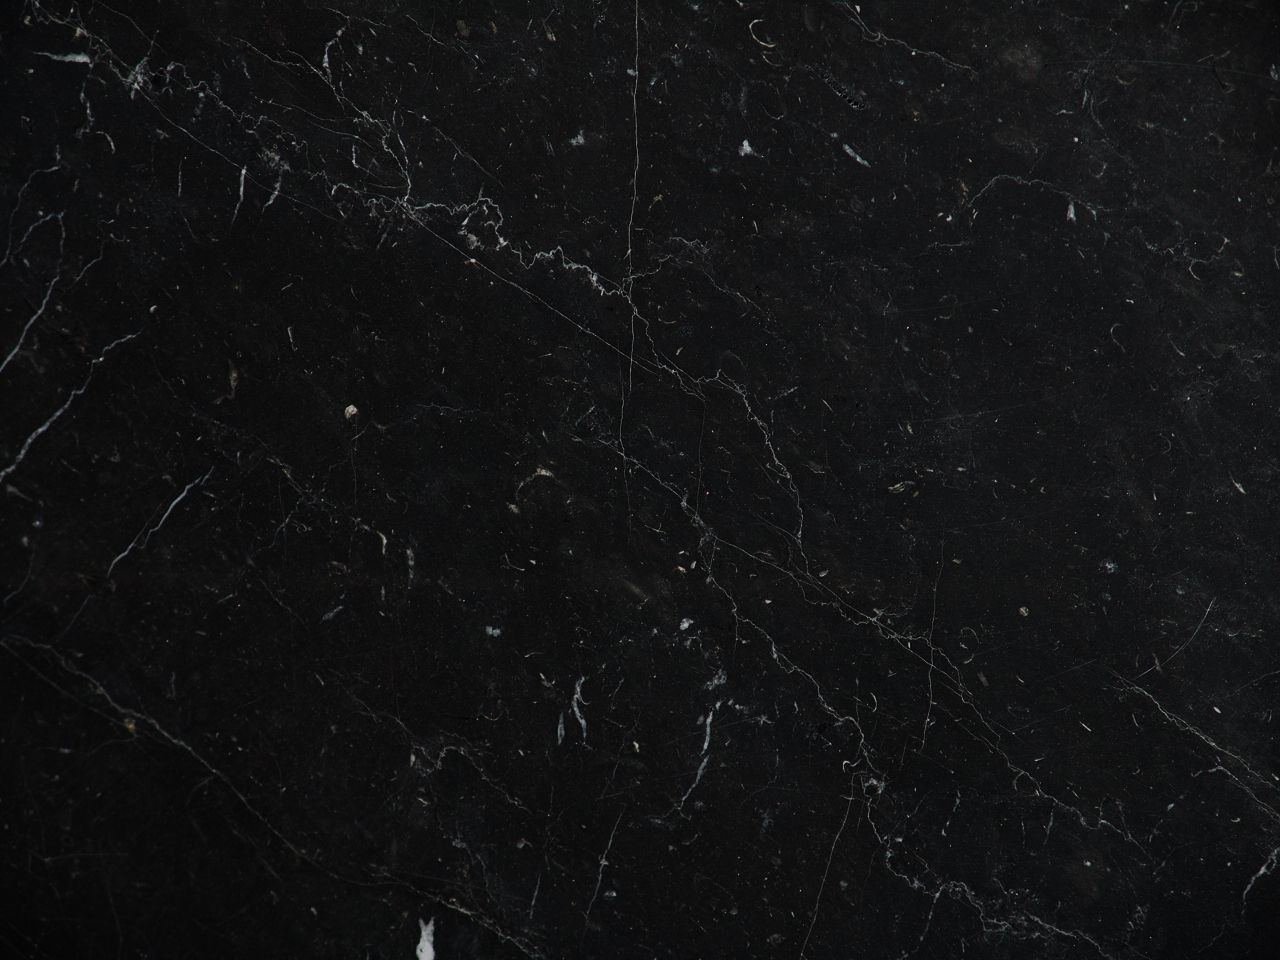 Black Marble Texture Pinterest Marbles And Searching